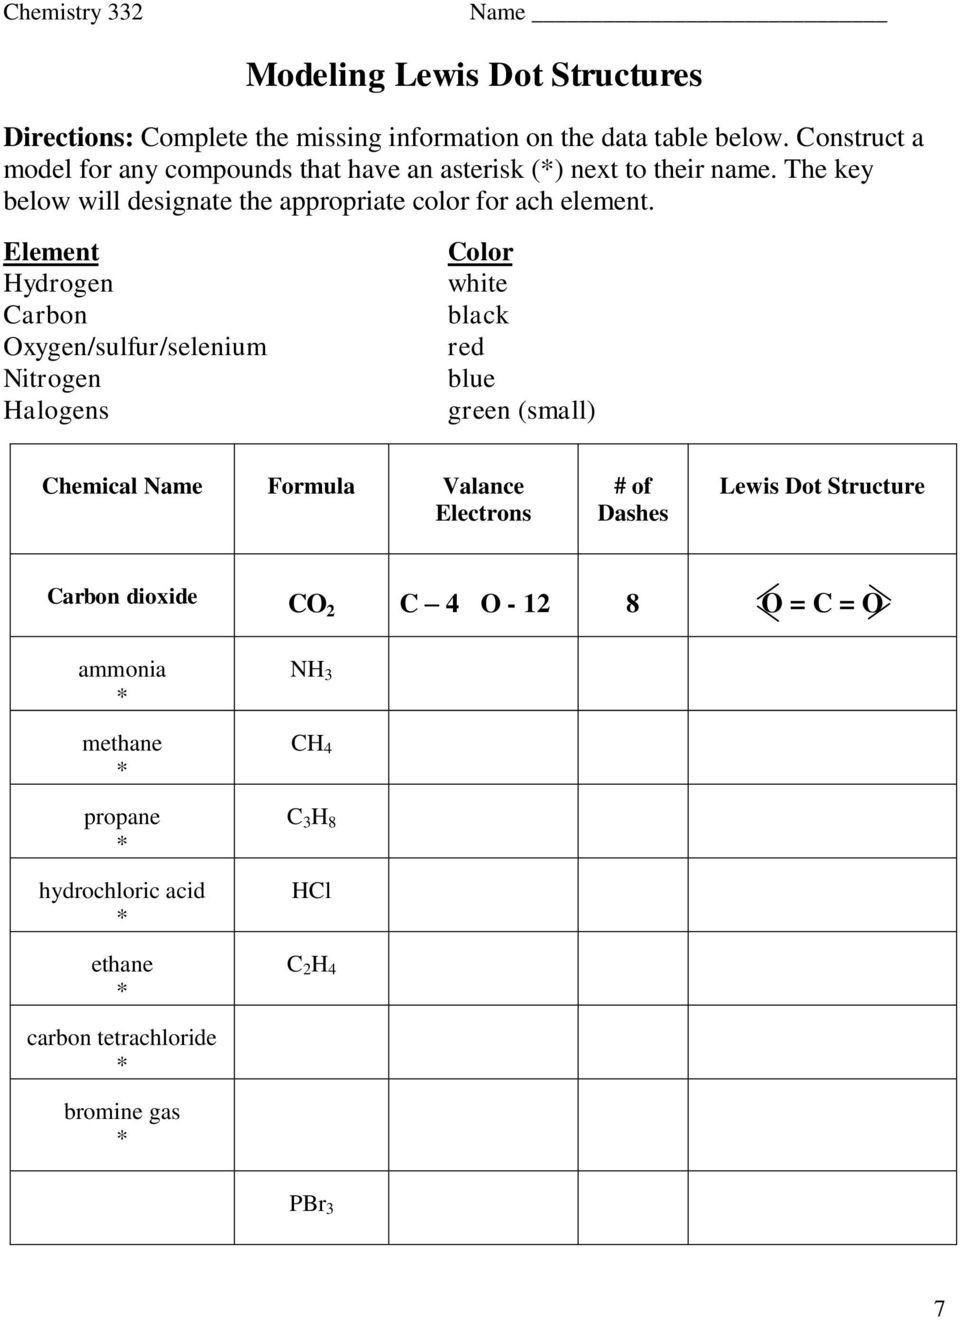 Lewis Dot Structure Worksheet Covalent Pounds Chemistry Pdf Free Download